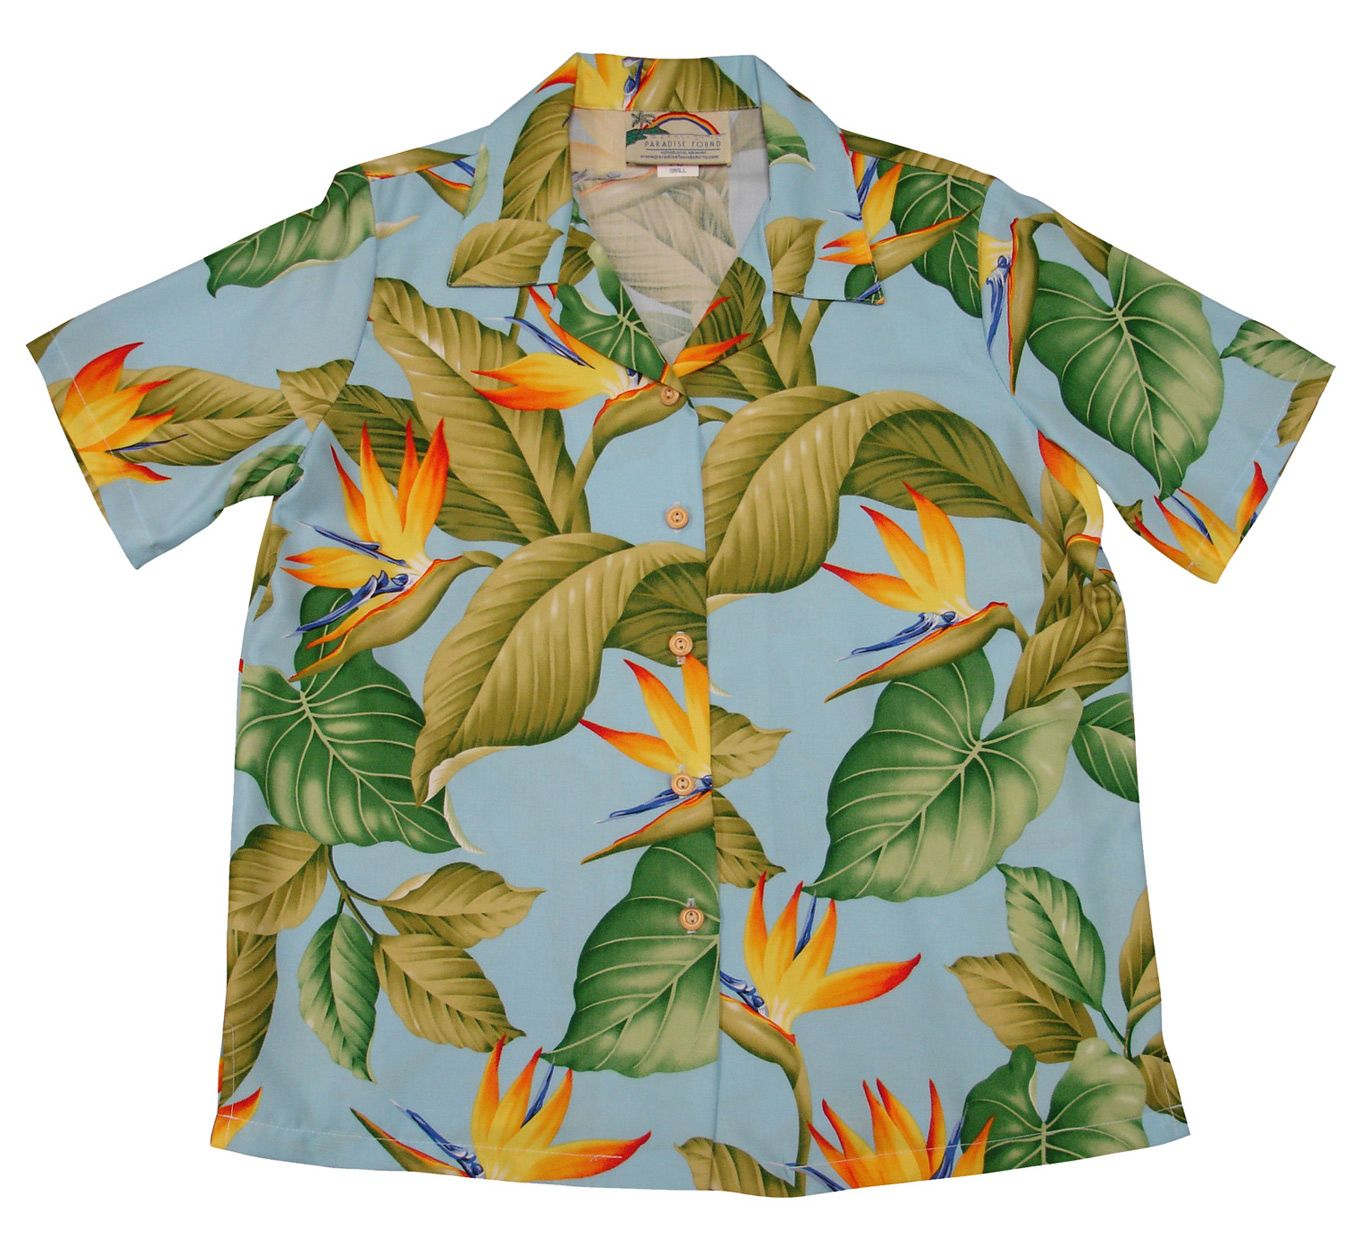 d539e00c0cb5 Paradise Found creators of fine Hawaiian style clothing with many Men's and  Women's matching outfit prints. Hand made for over 50 years. 100% Rayon .